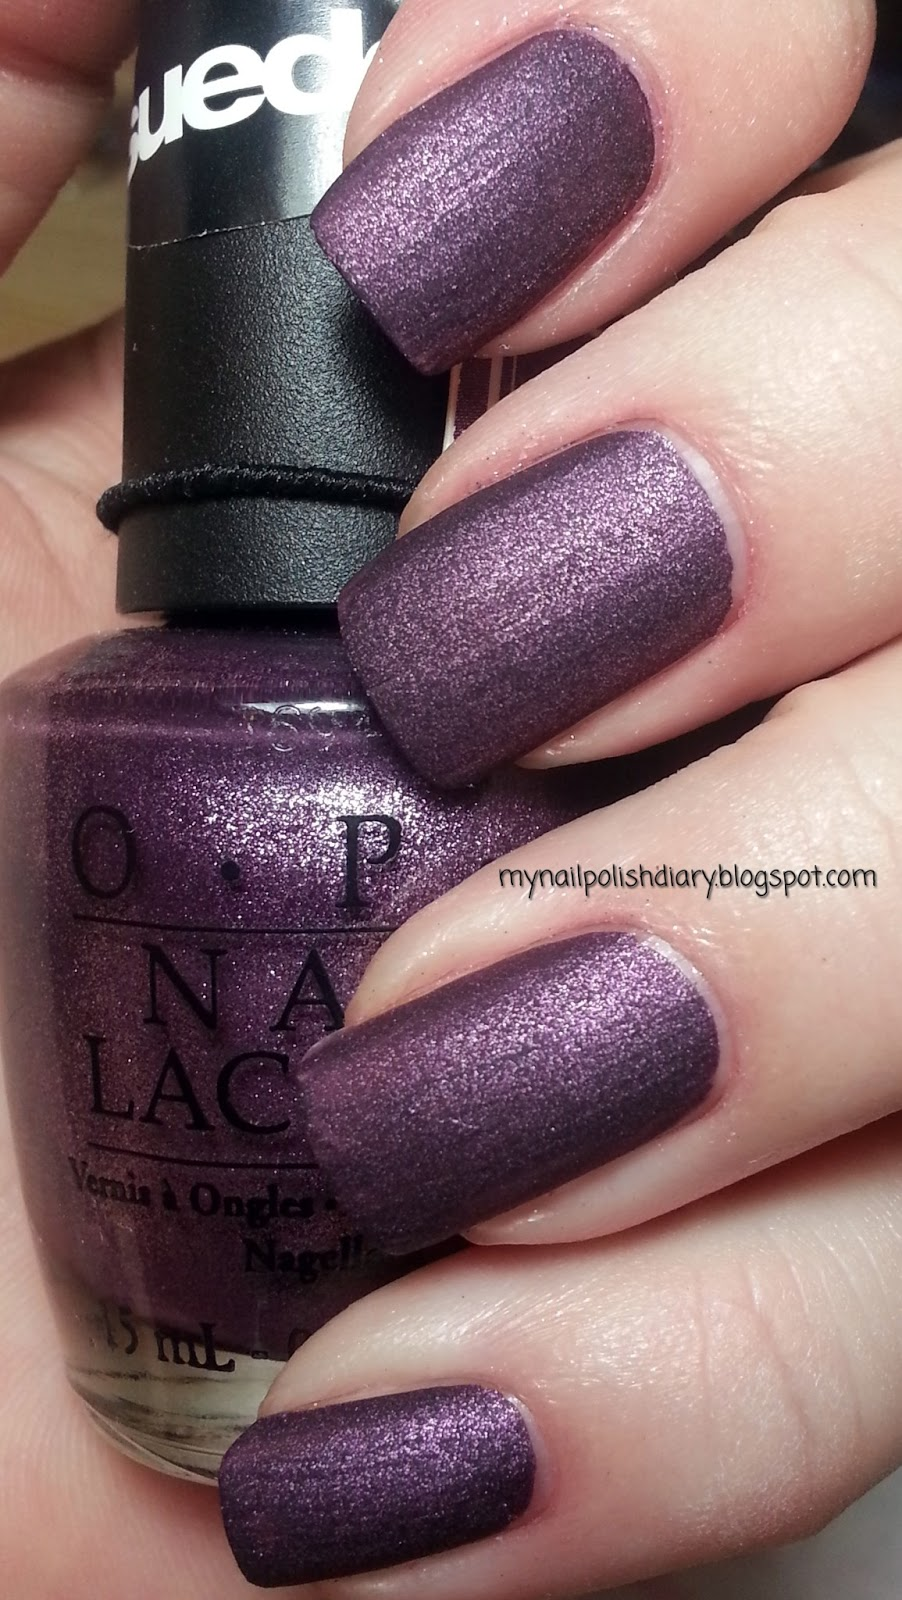 My Nail Polish Diary: OPI Lincoln Park After Dark Suede